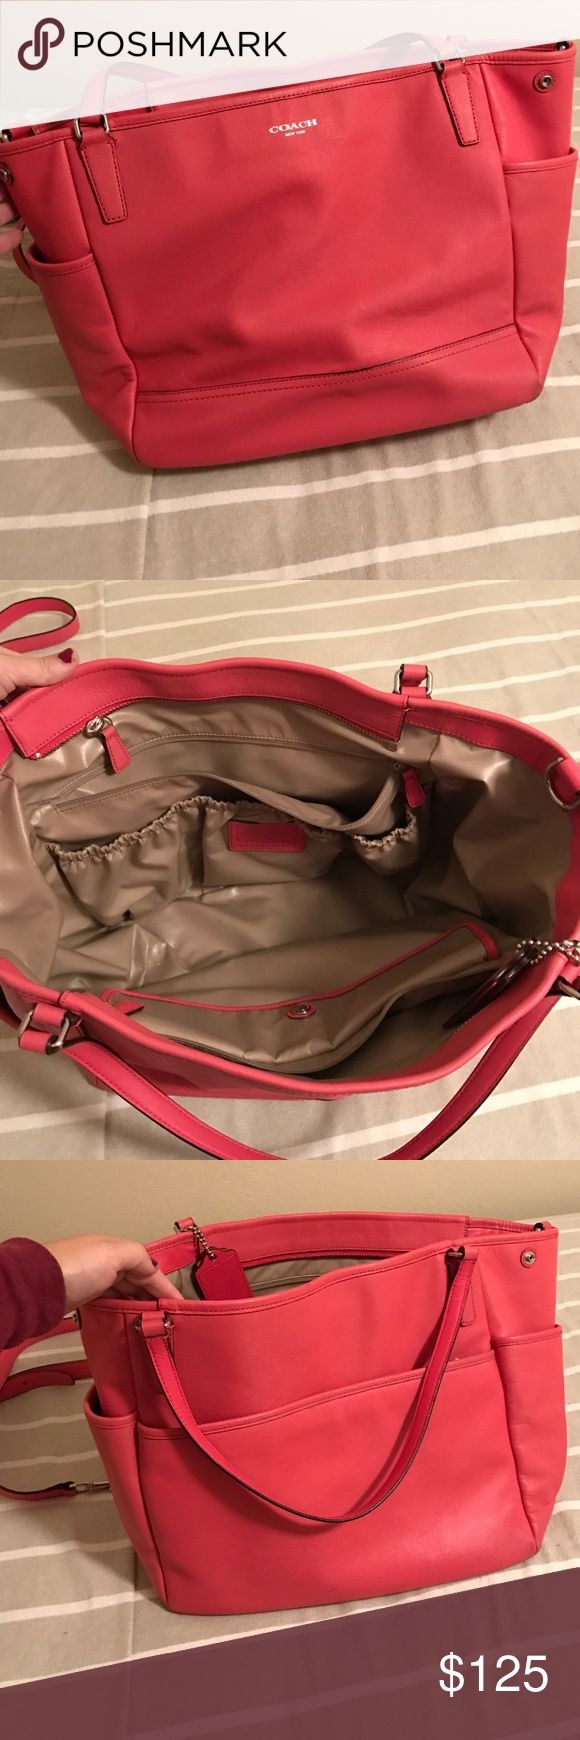 Coach diaper bag Coral coach diaper bag with shoulder and cross body straps Coach Bags Baby Bags